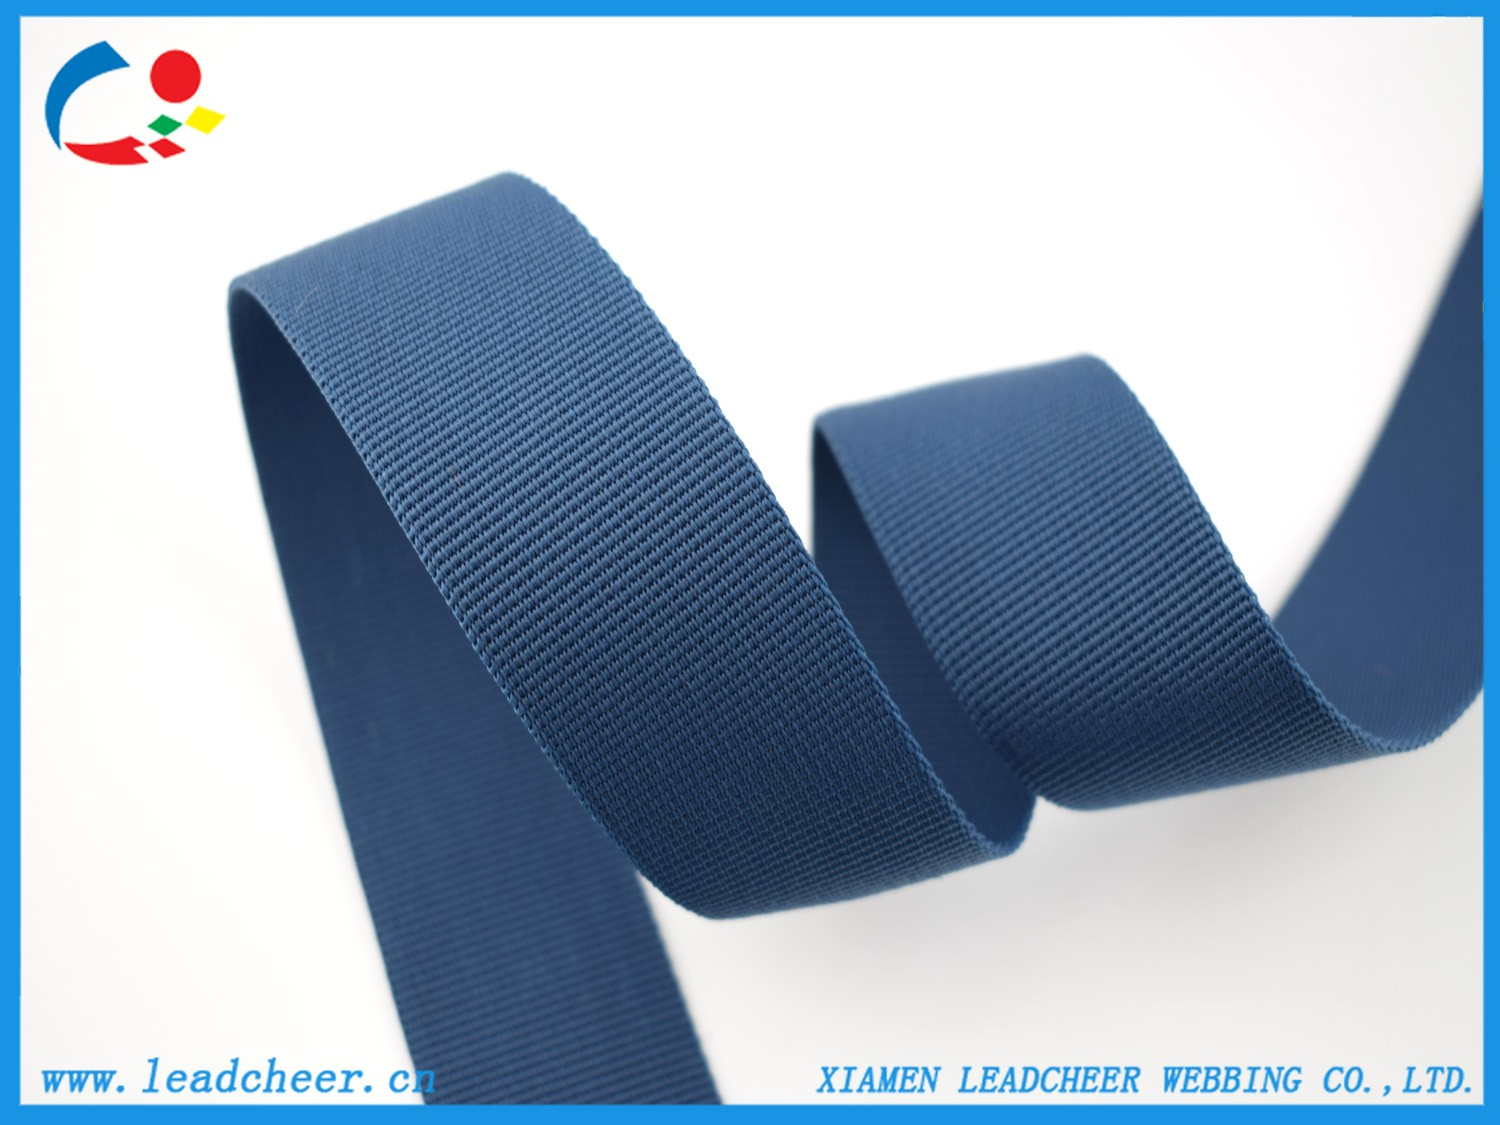 High quality PP Webbing Sling Quotes,China PP Webbing Sling Factory,PP Webbing Sling Purchasing